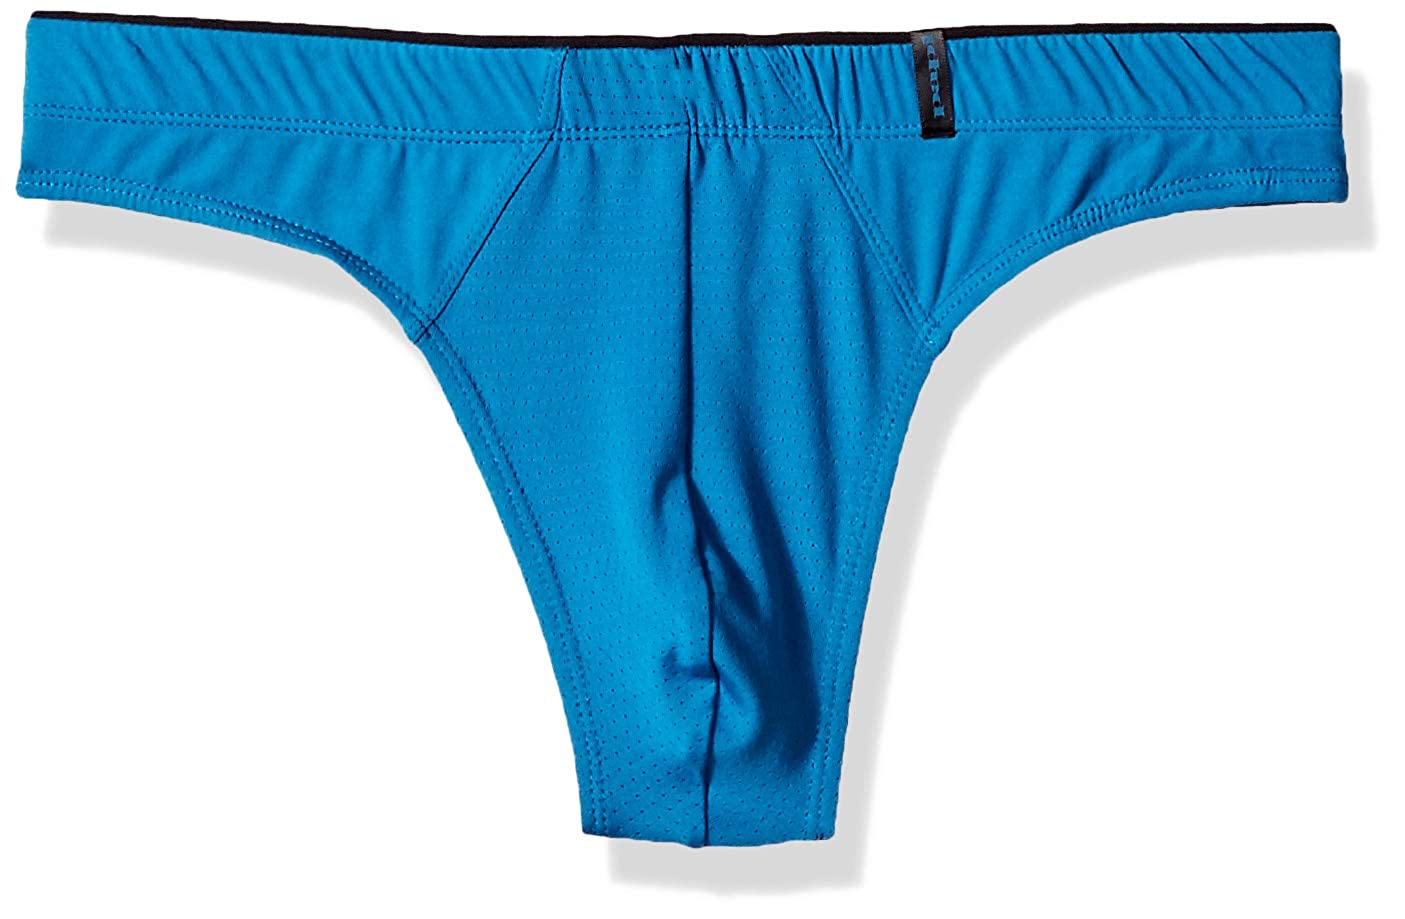 Papi mens solid skins peached jersey thong clothing jpg 1405x919 Jersey and  thong e87791a33